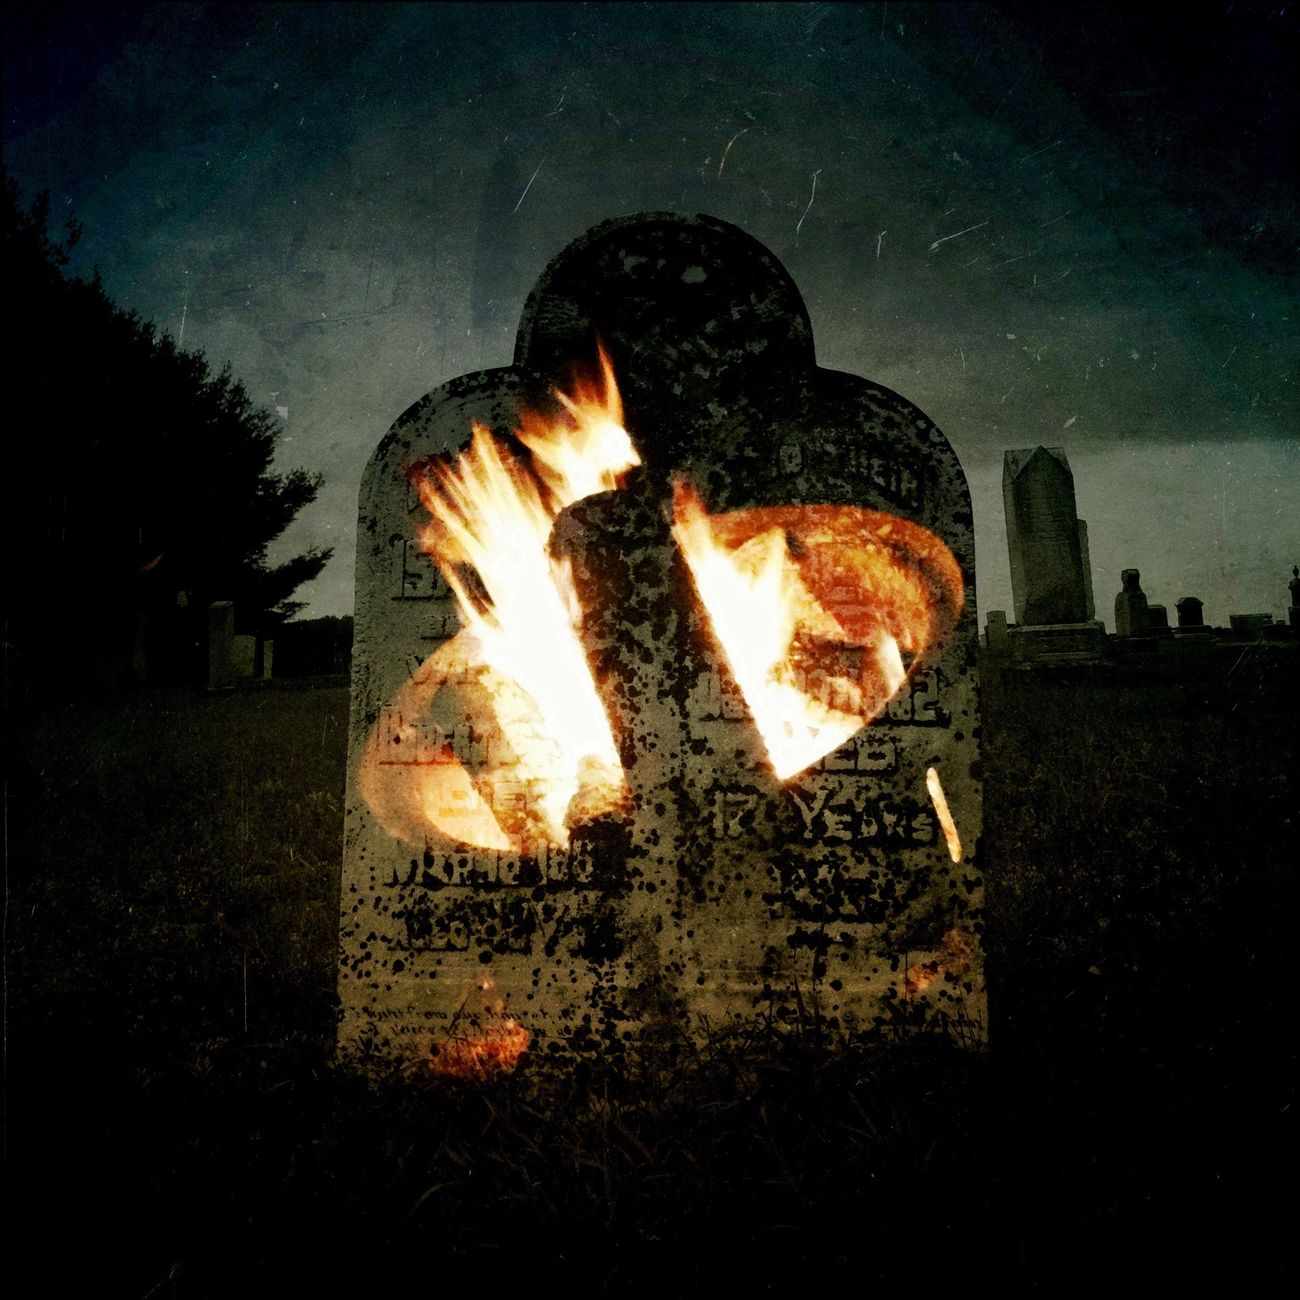 Double Exposure My Soul Is Stained... Fire Good, Fire Friend Graveyard Beauty